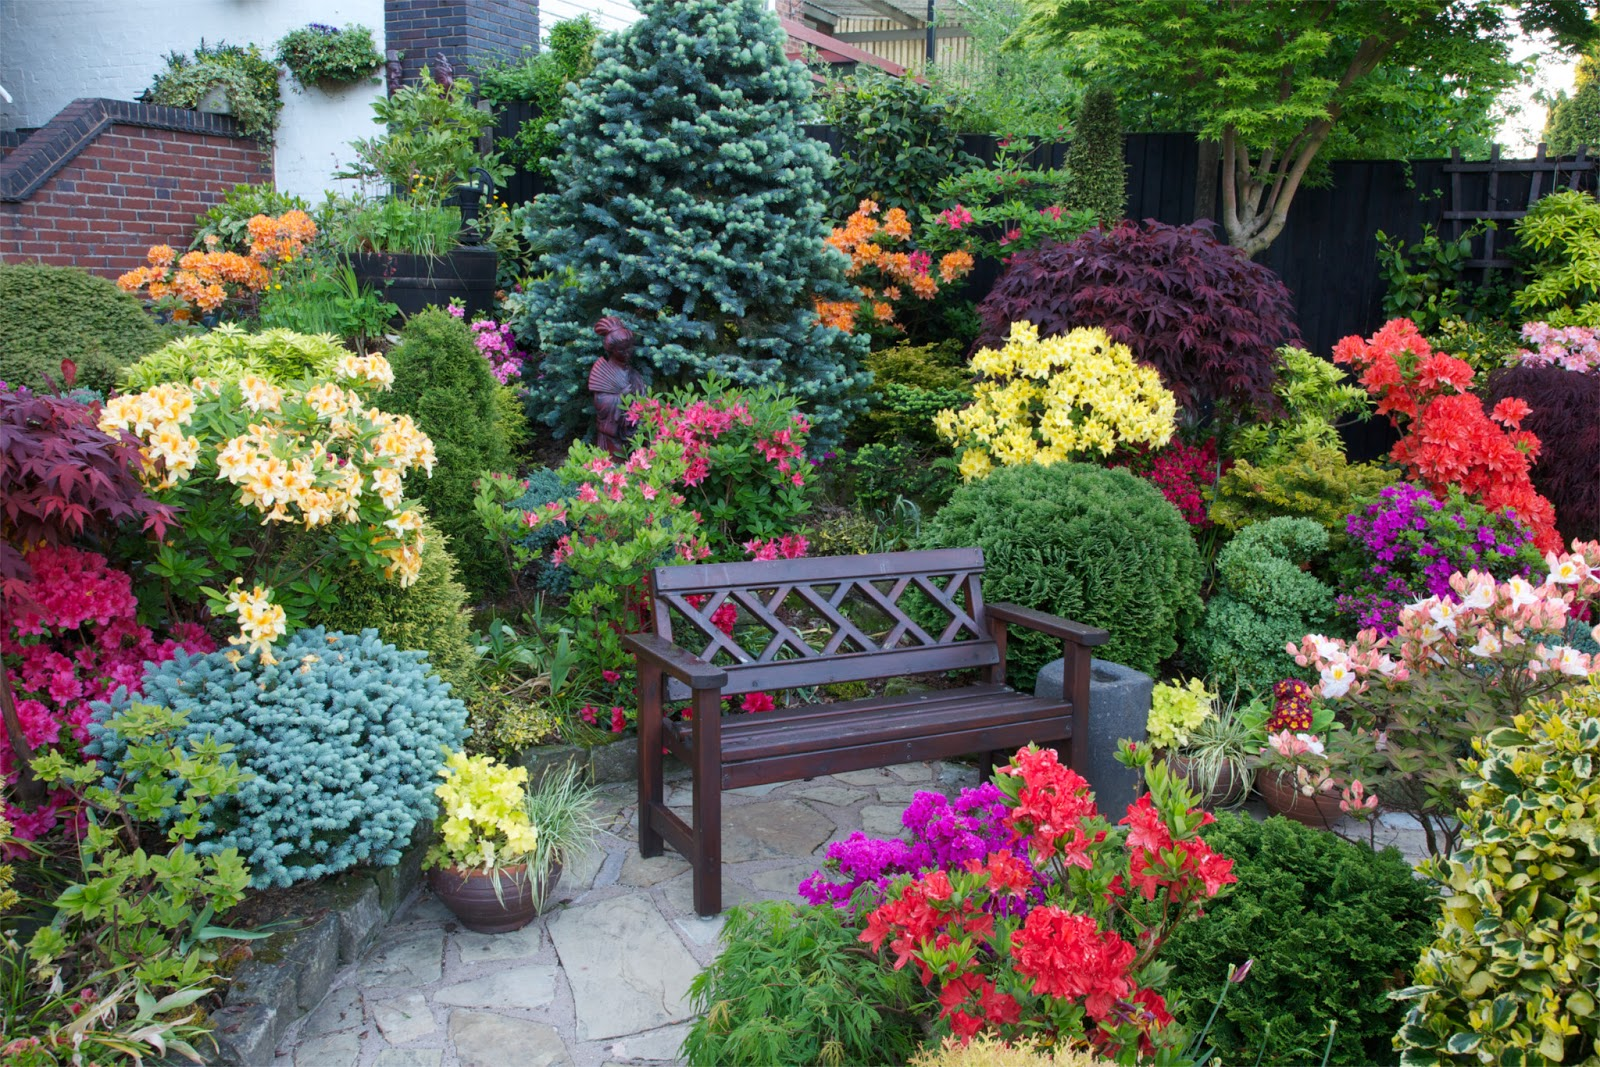 seat amongst the azalea flowers - Flowers For Home Garden